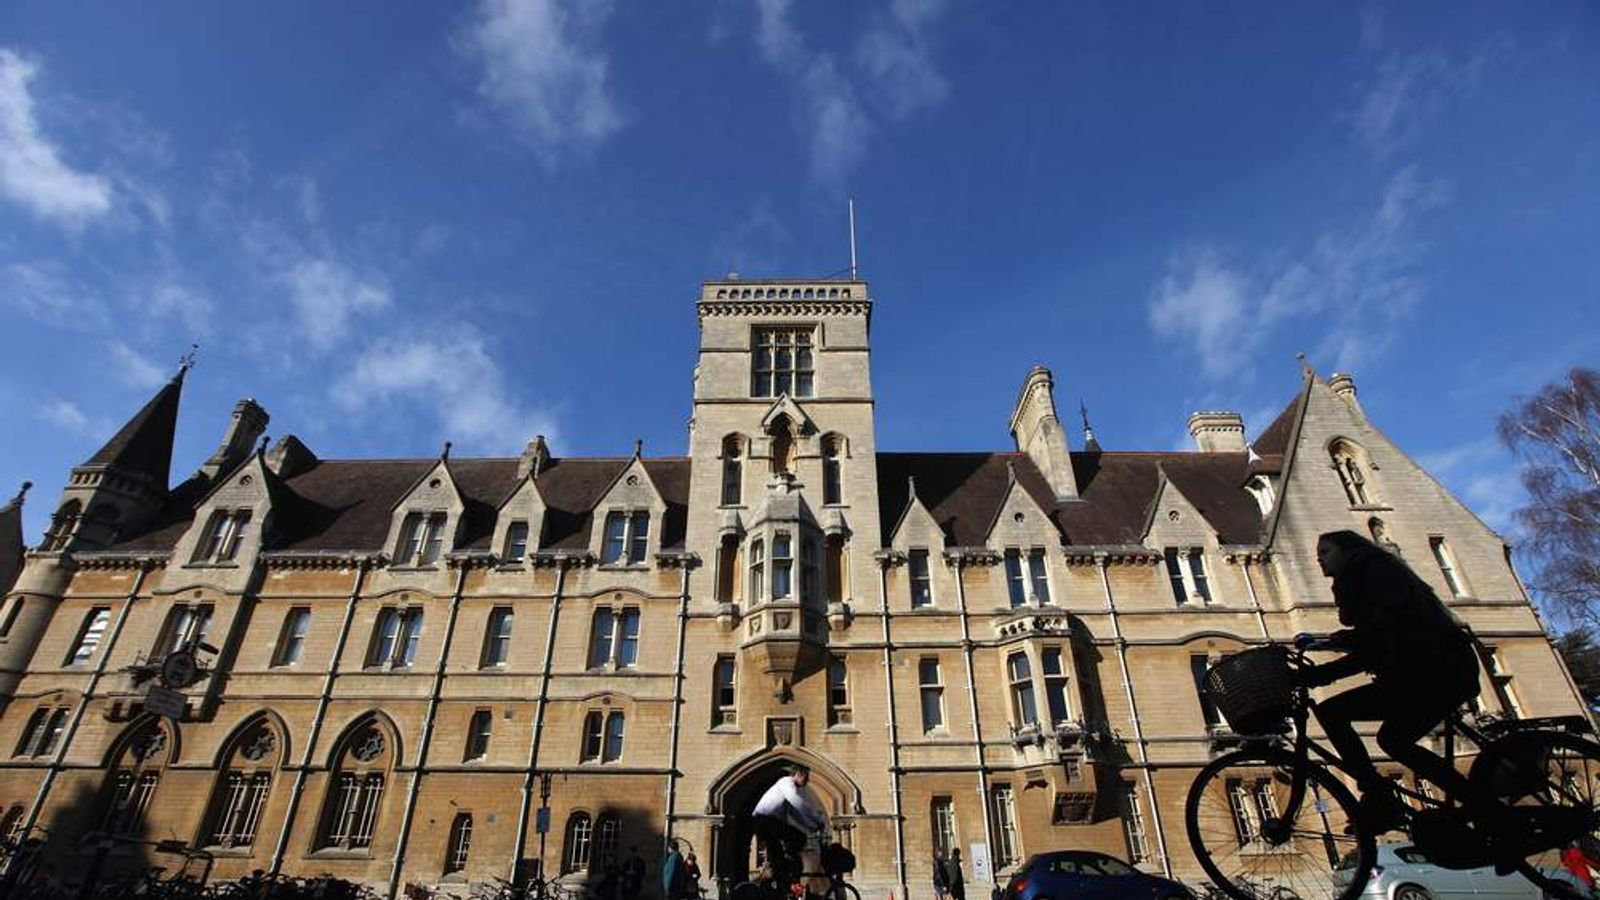 A woman cycles past Balliol College in Oxford city centre.